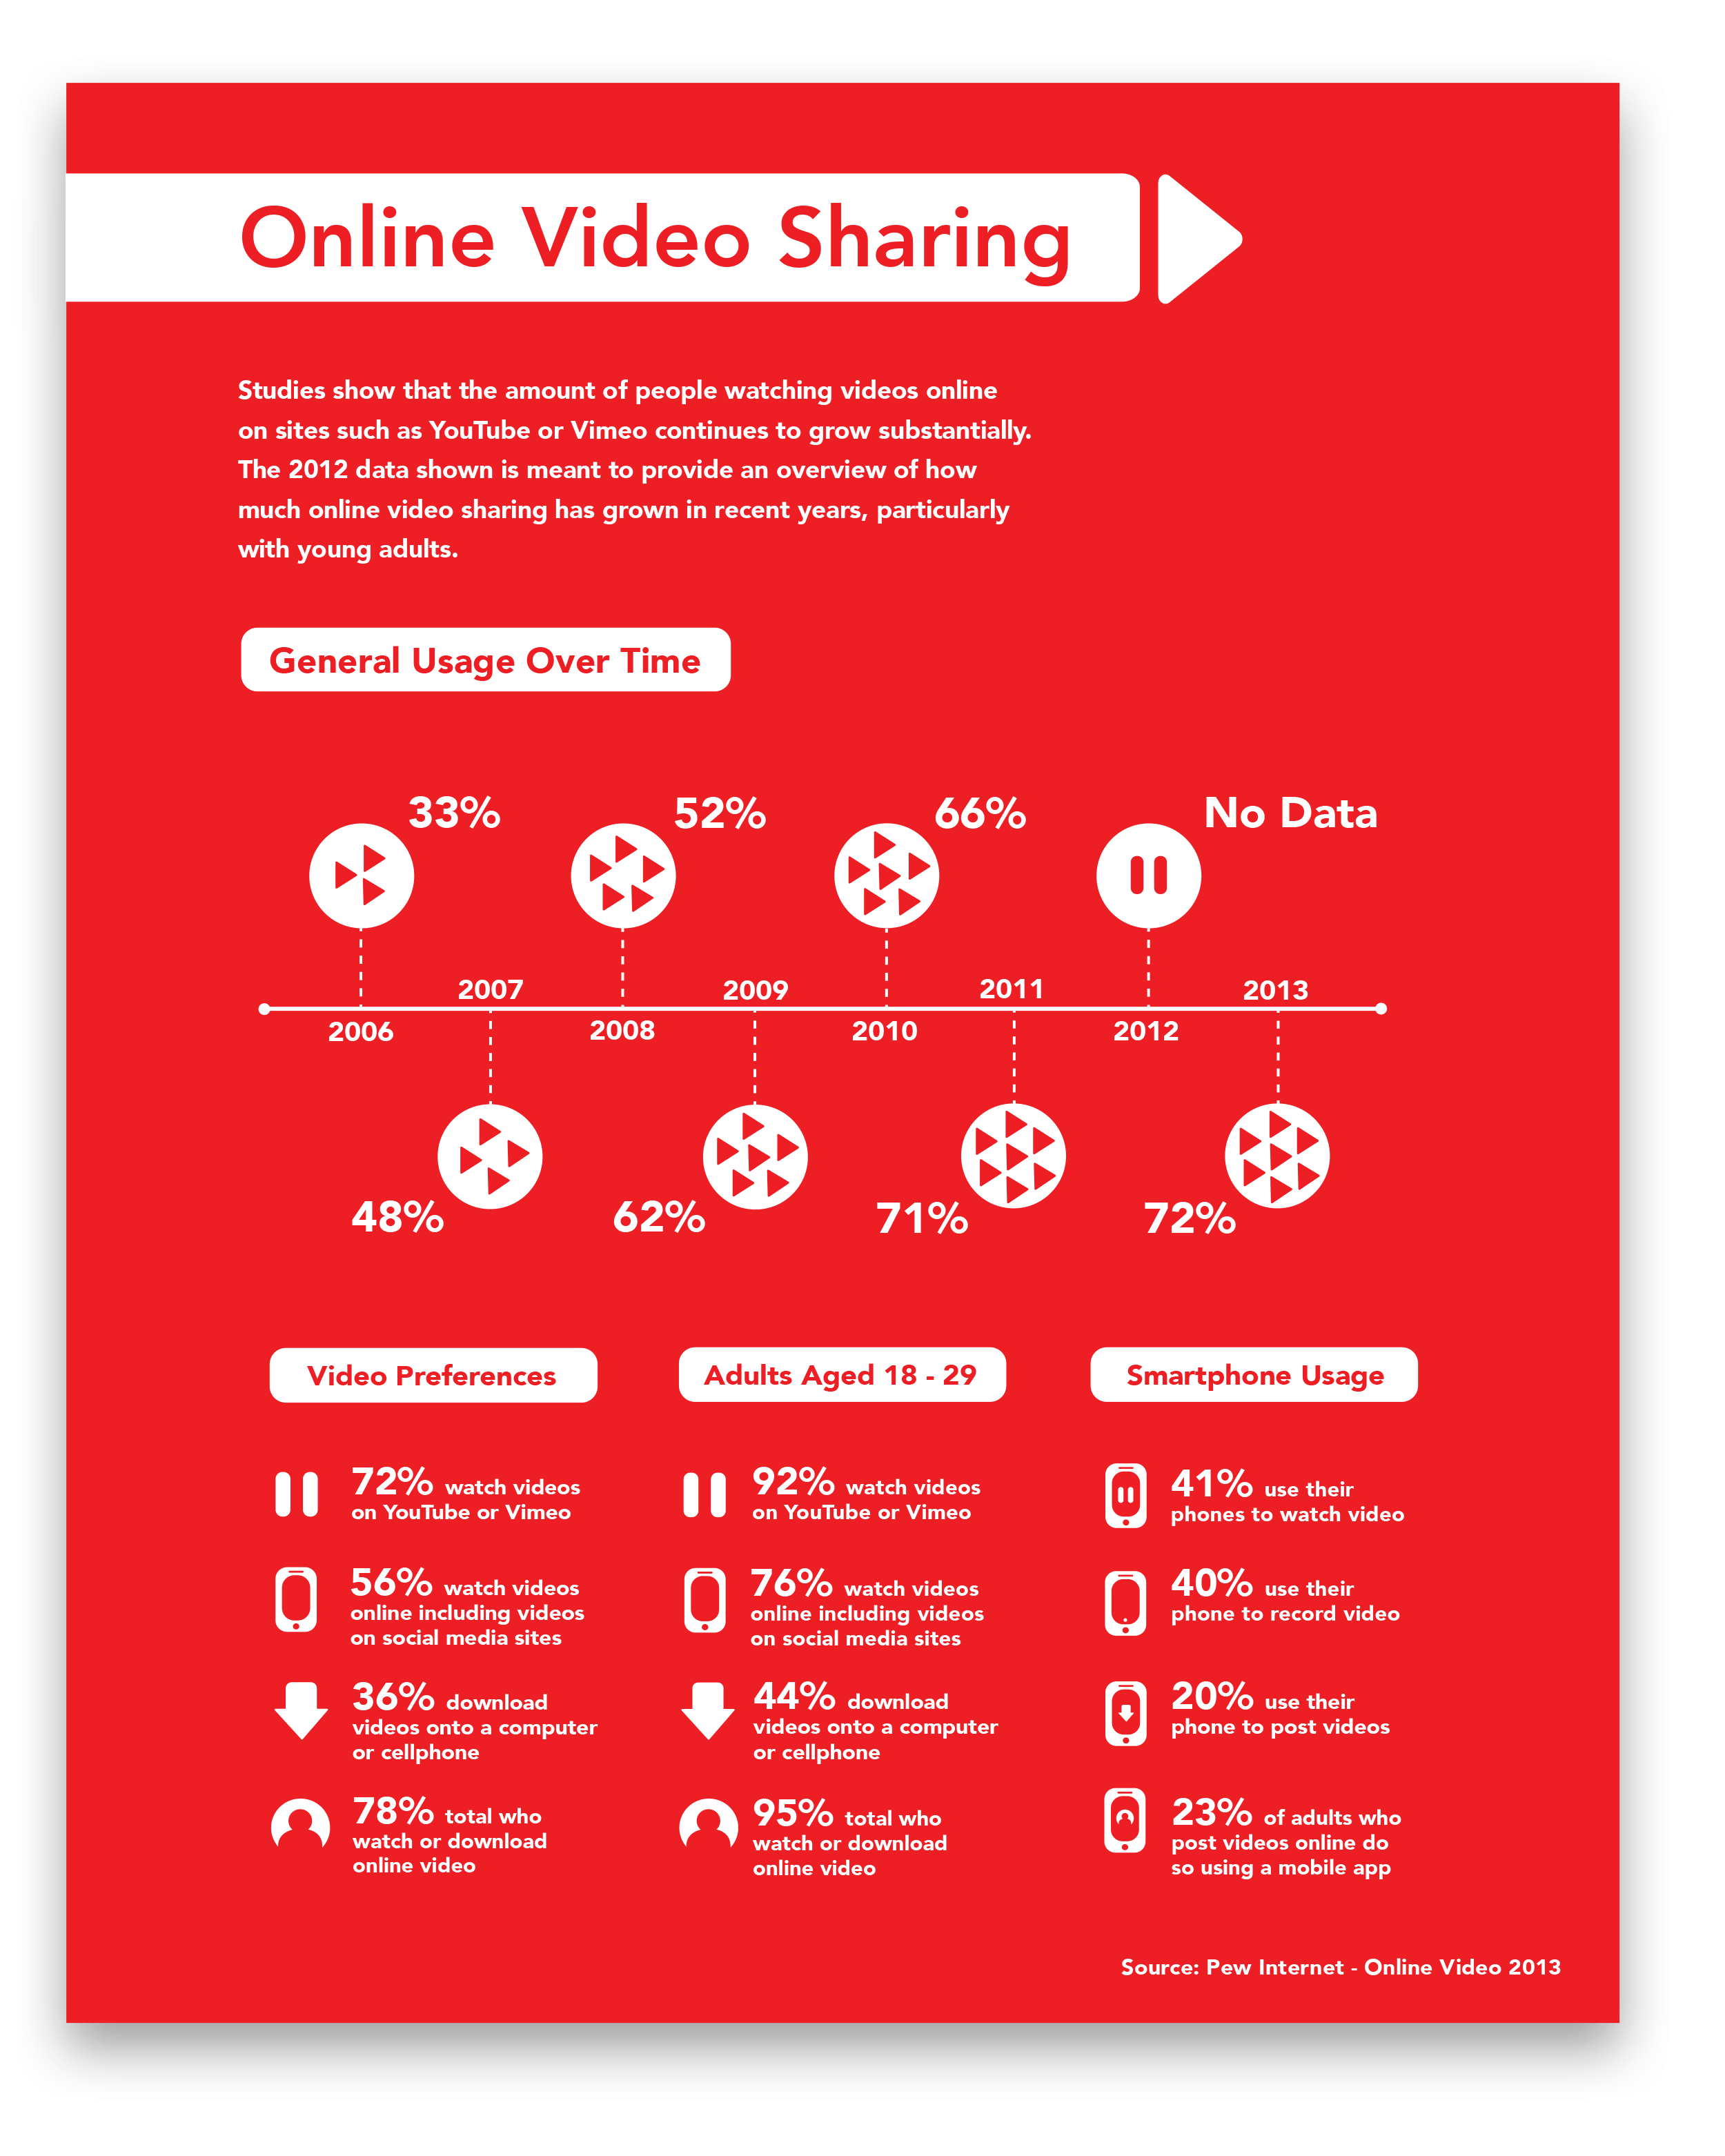 Online Video Sharing